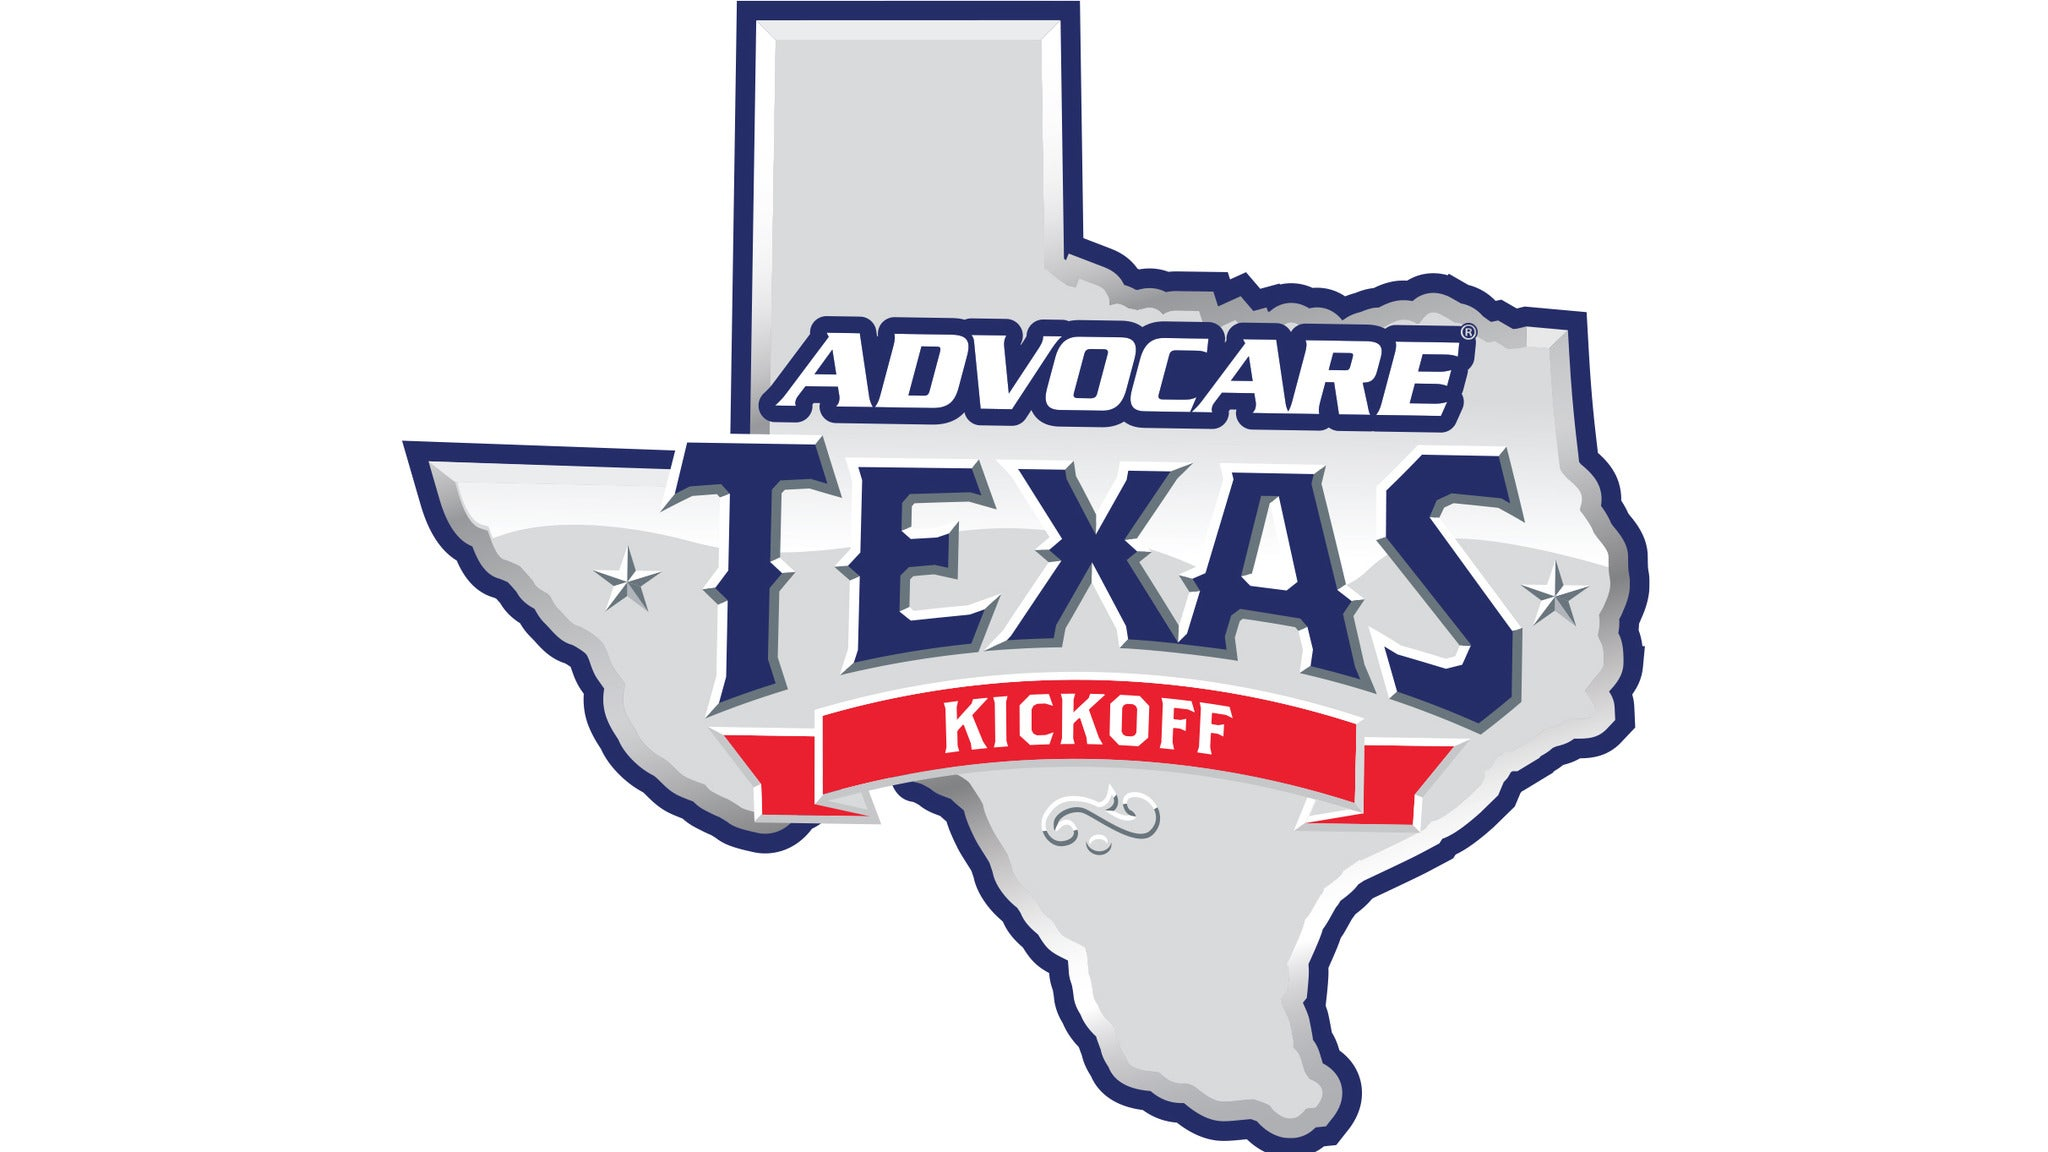 2018 AdvoCare Texas Kickoff - Texas Tech v. Ole Miss